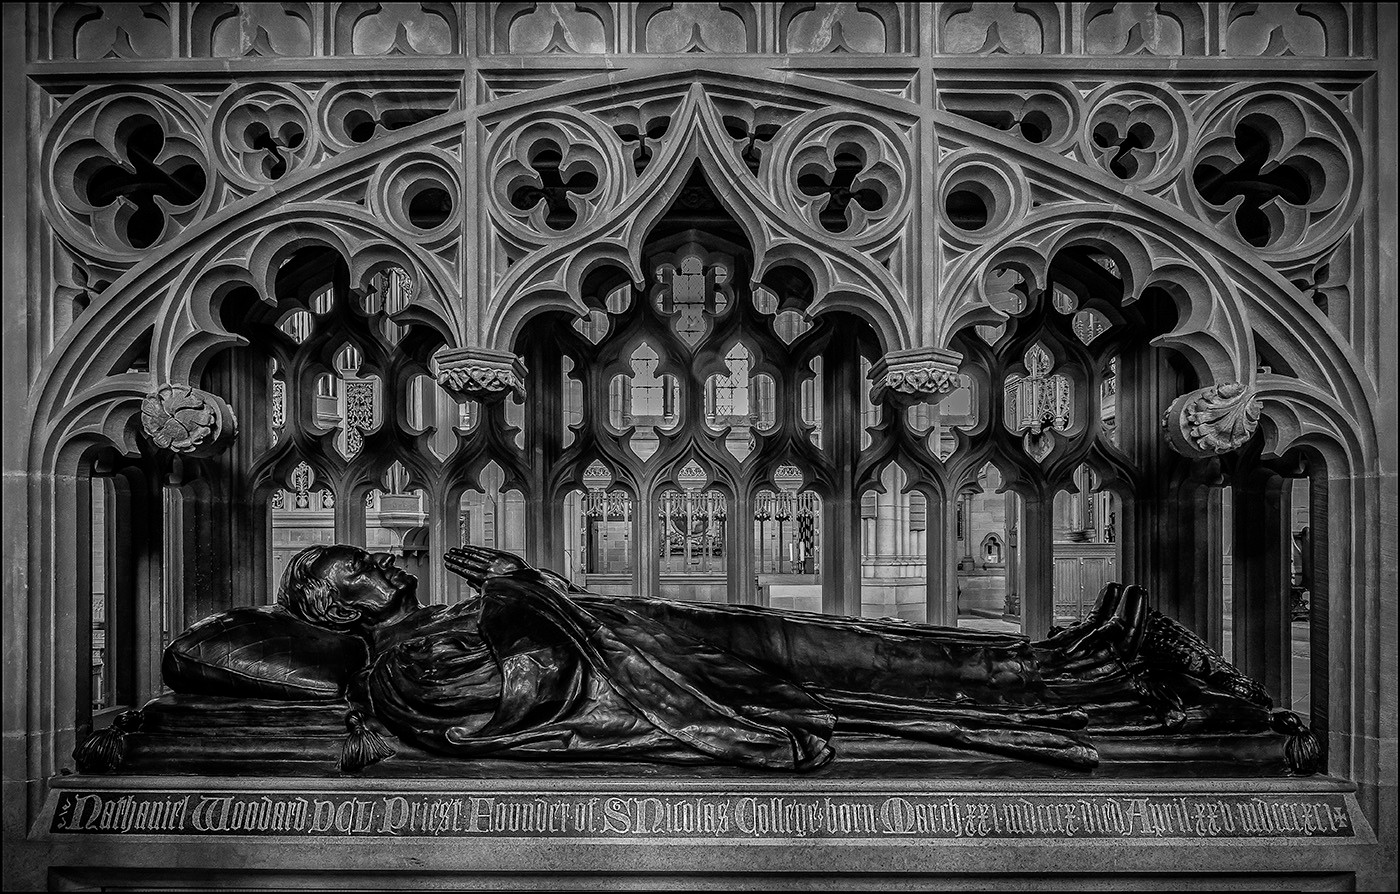 PRINT 20 THE TOMB OF NATHANIEL WOODWARD, LANCING CHAPEL by Mick Dudley